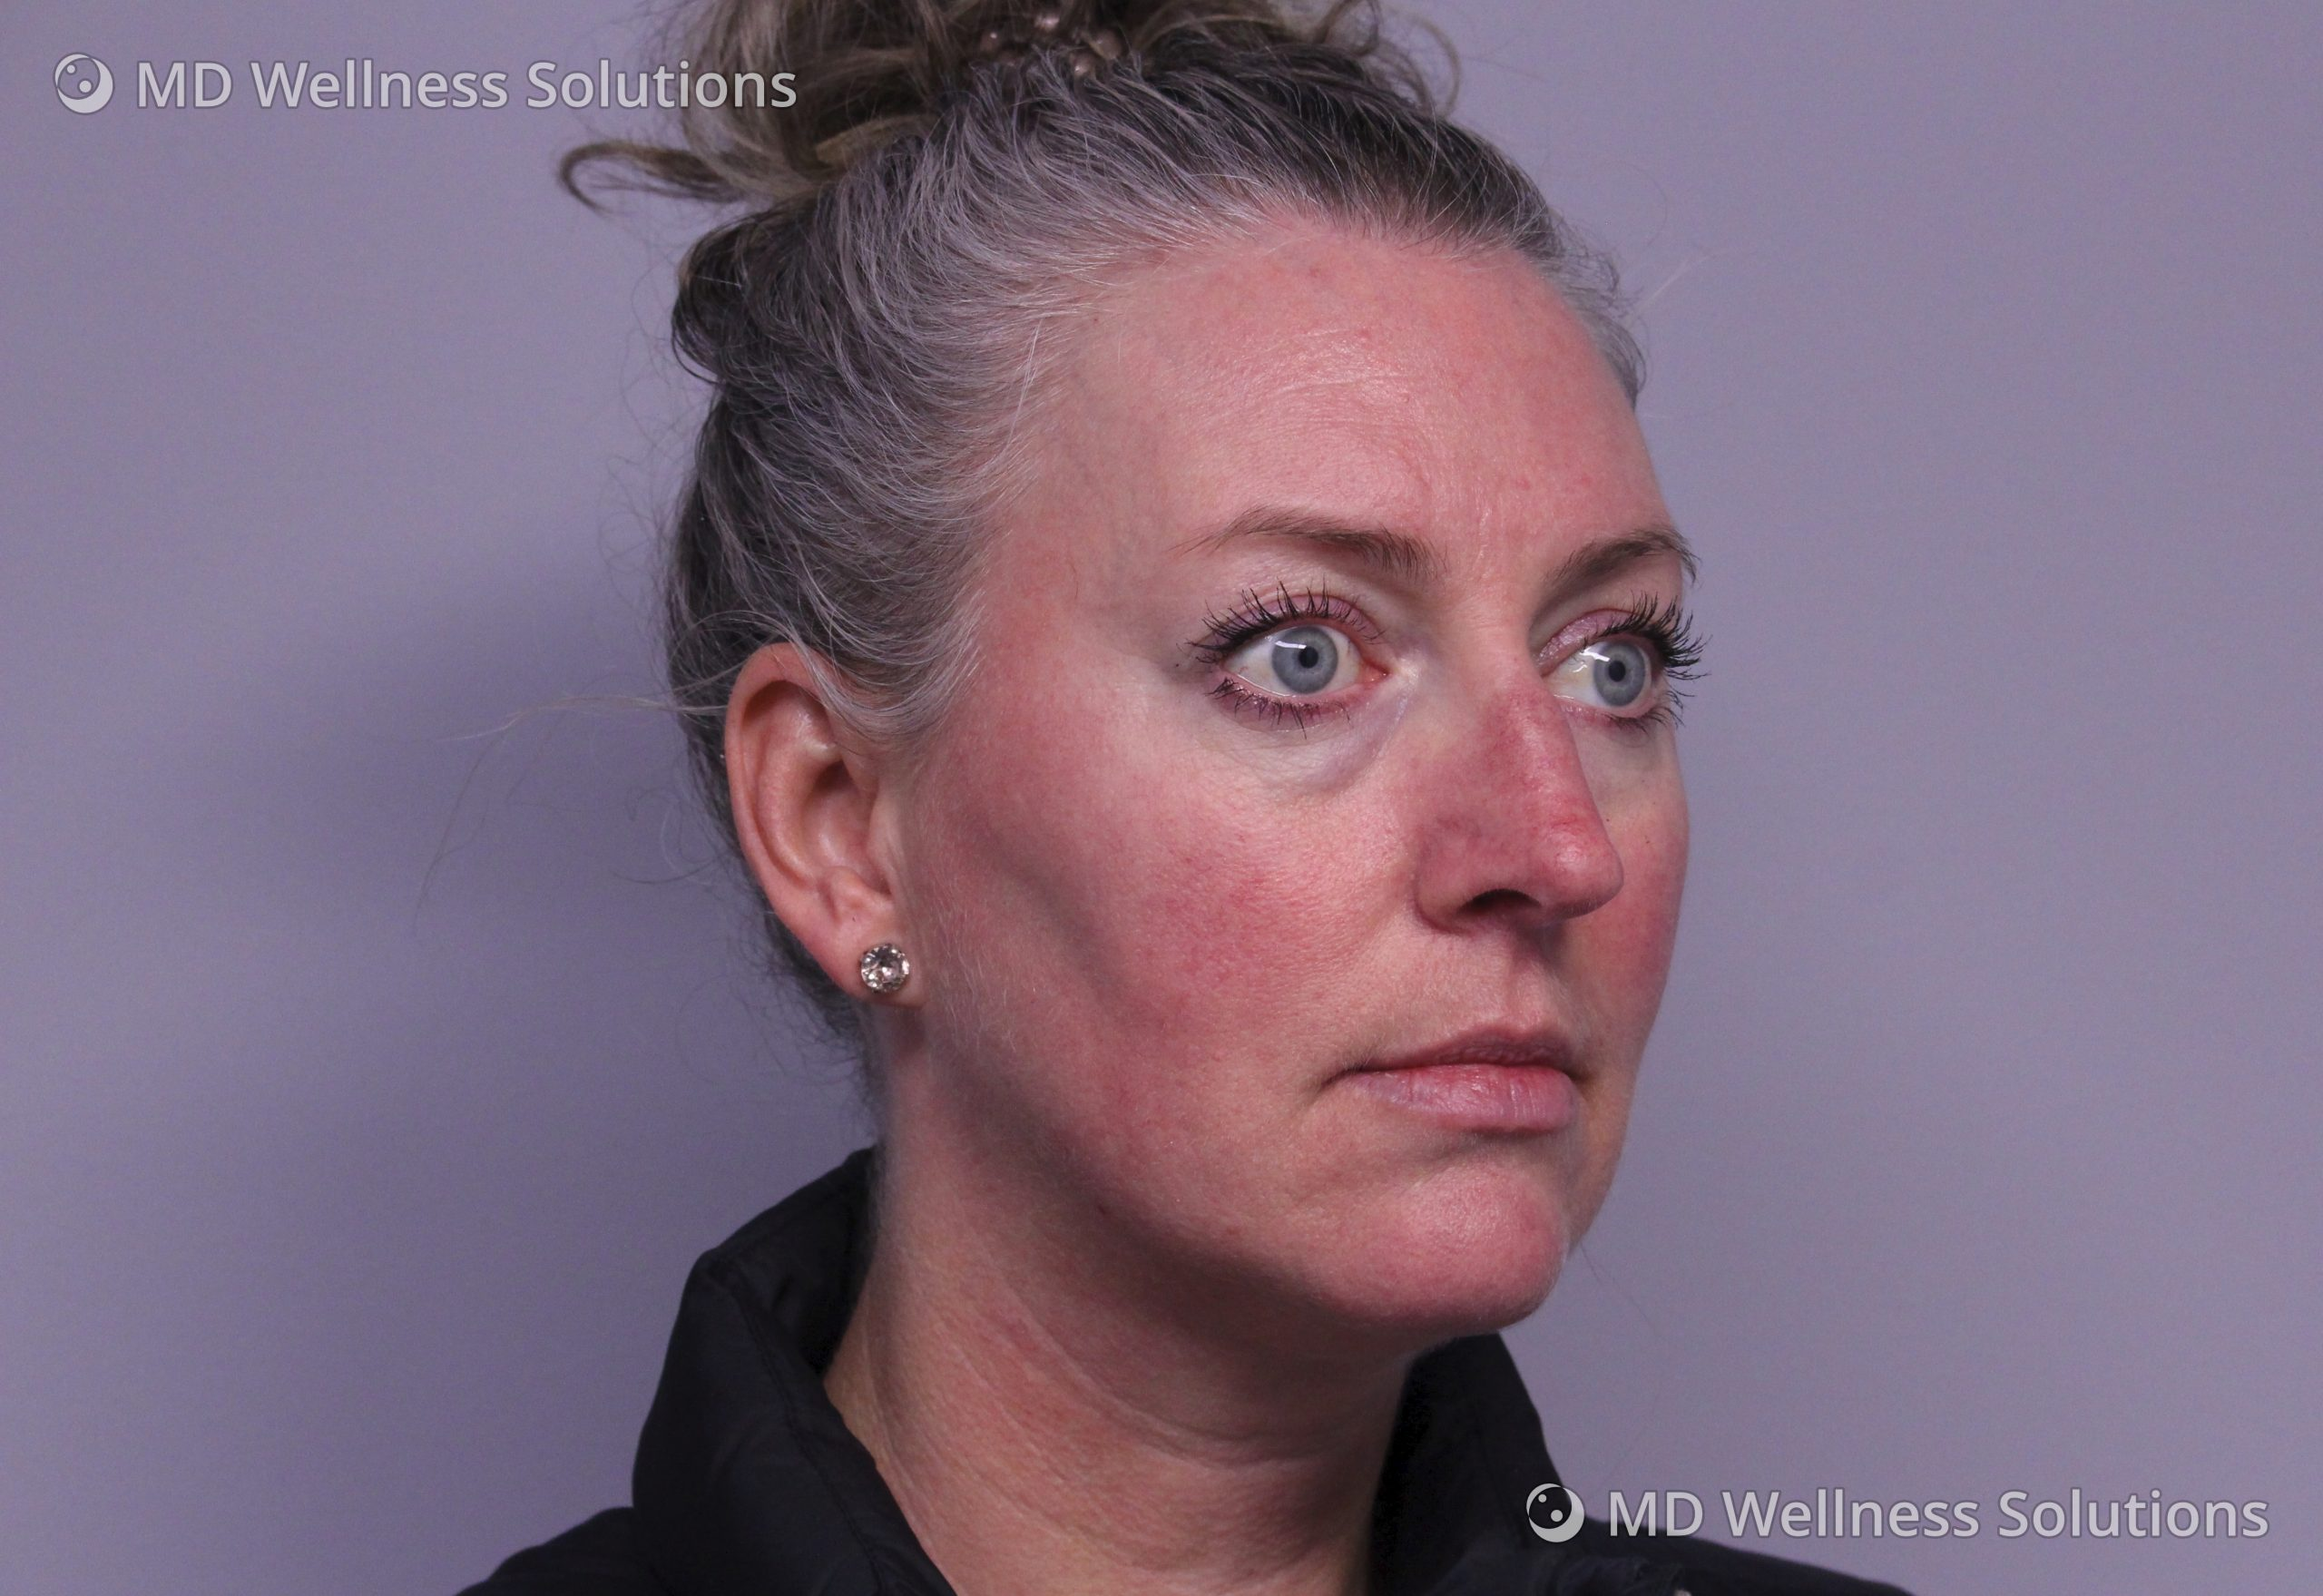 35-44 year old woman after rosacea treatment